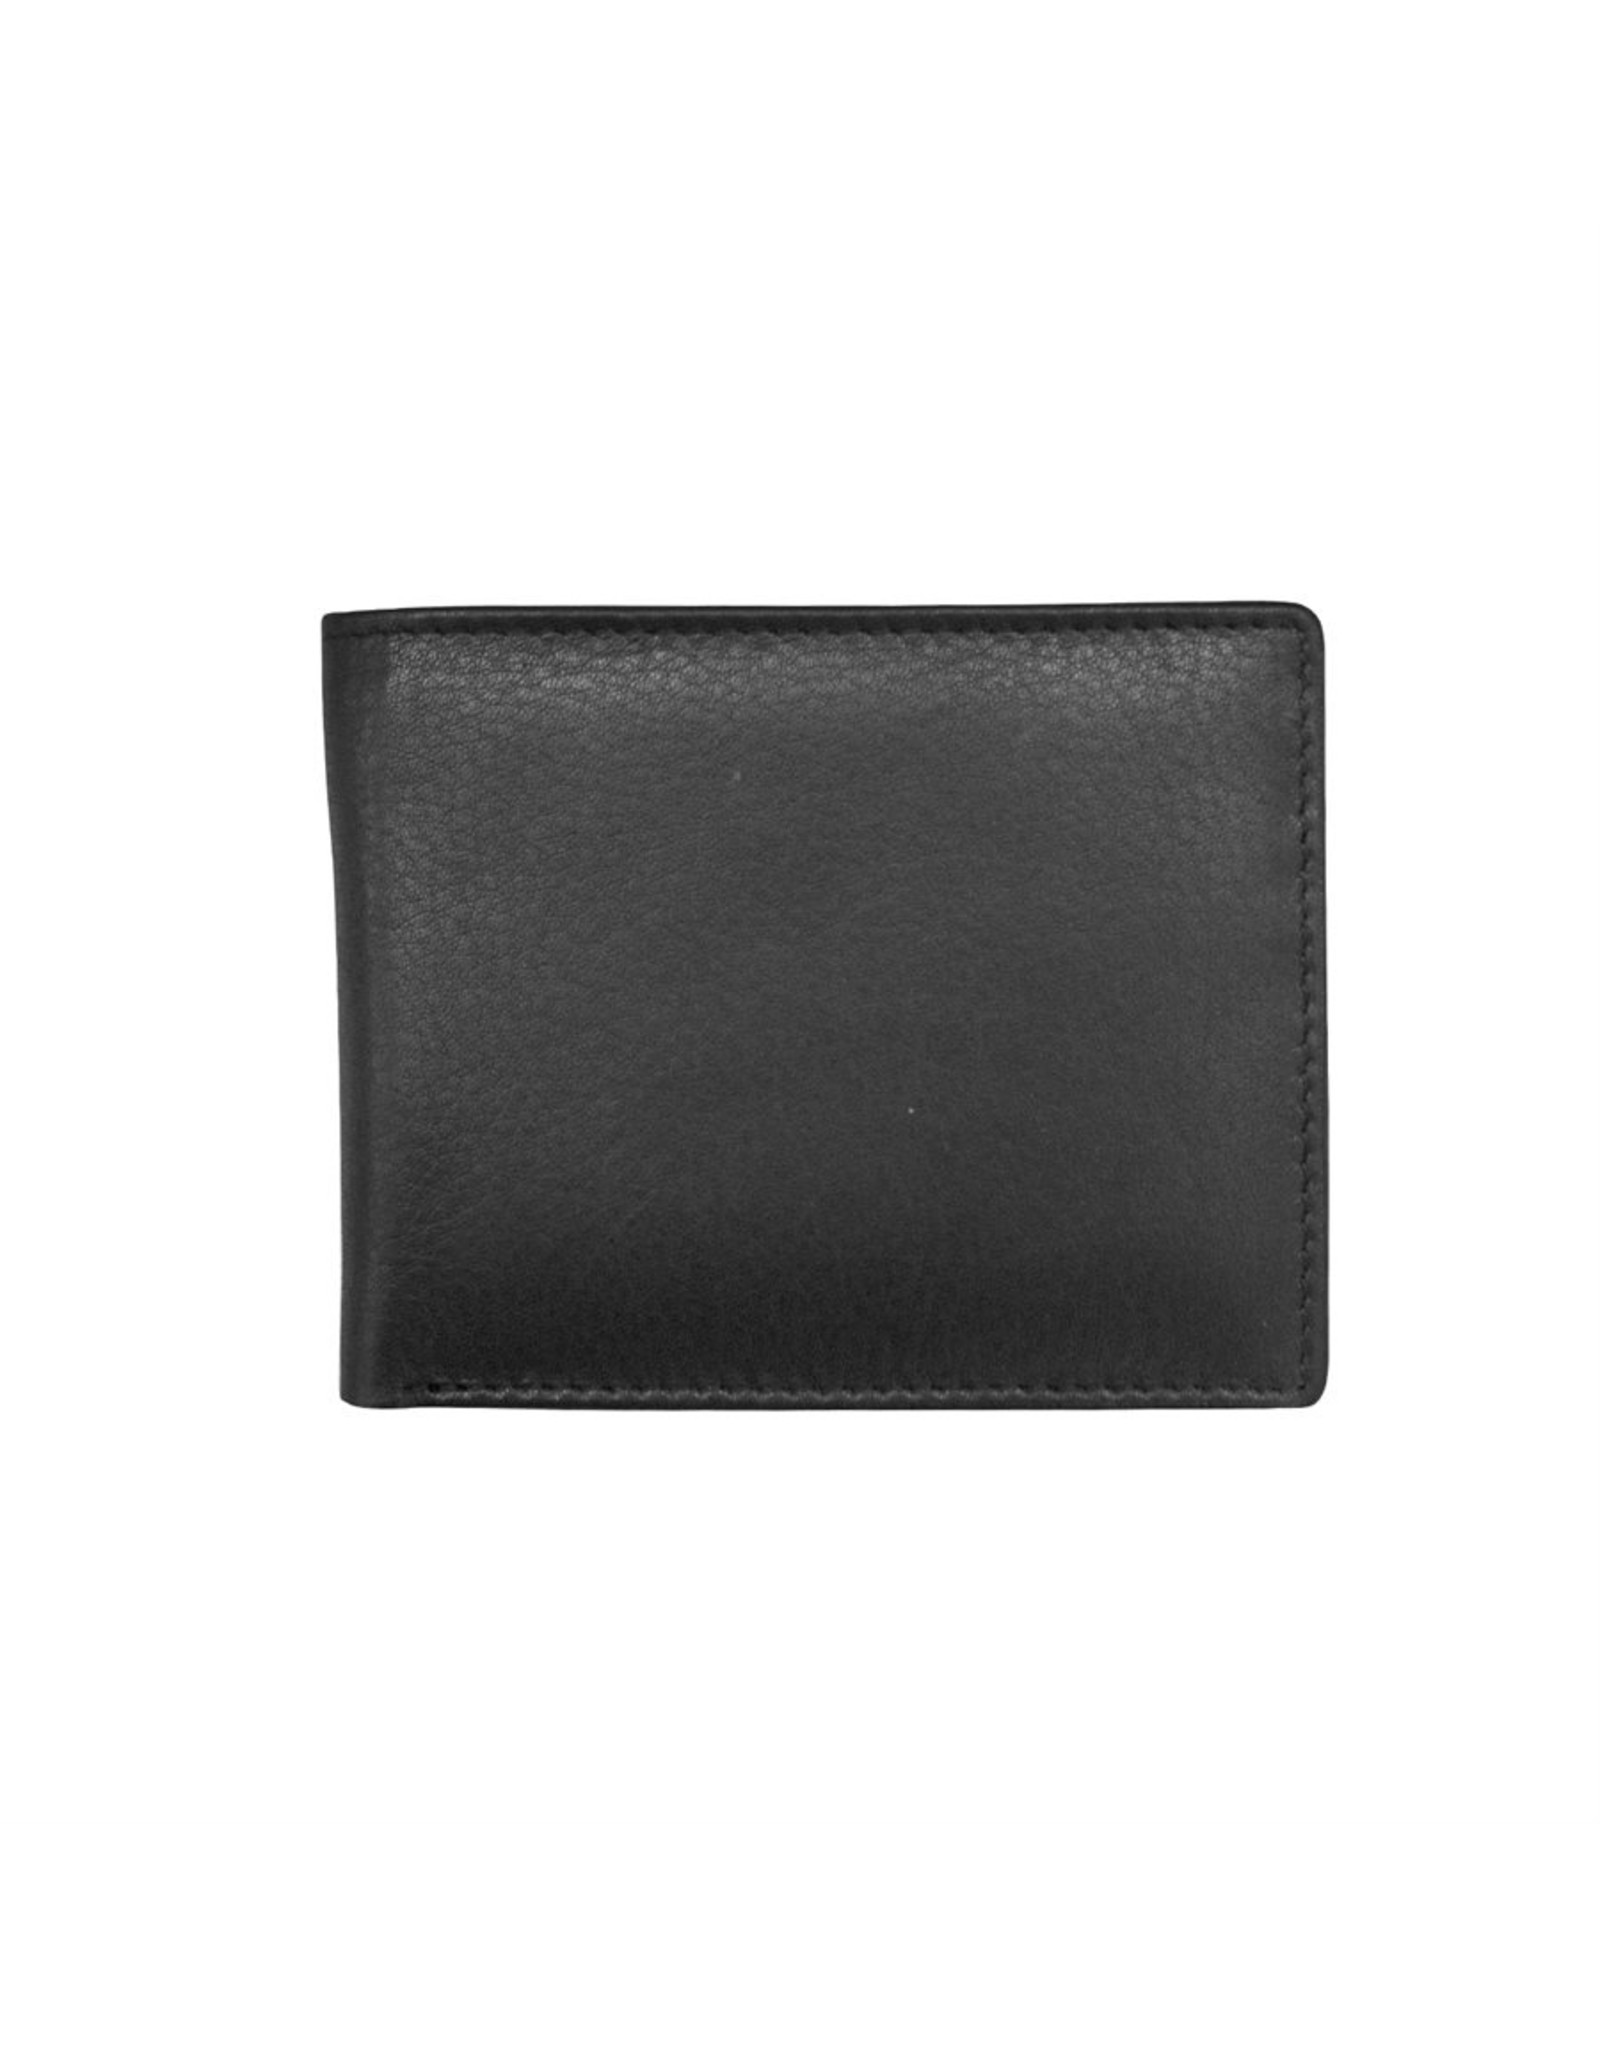 Leather Handbags and Accessories 7120 Black - RFID BiFold Wallet